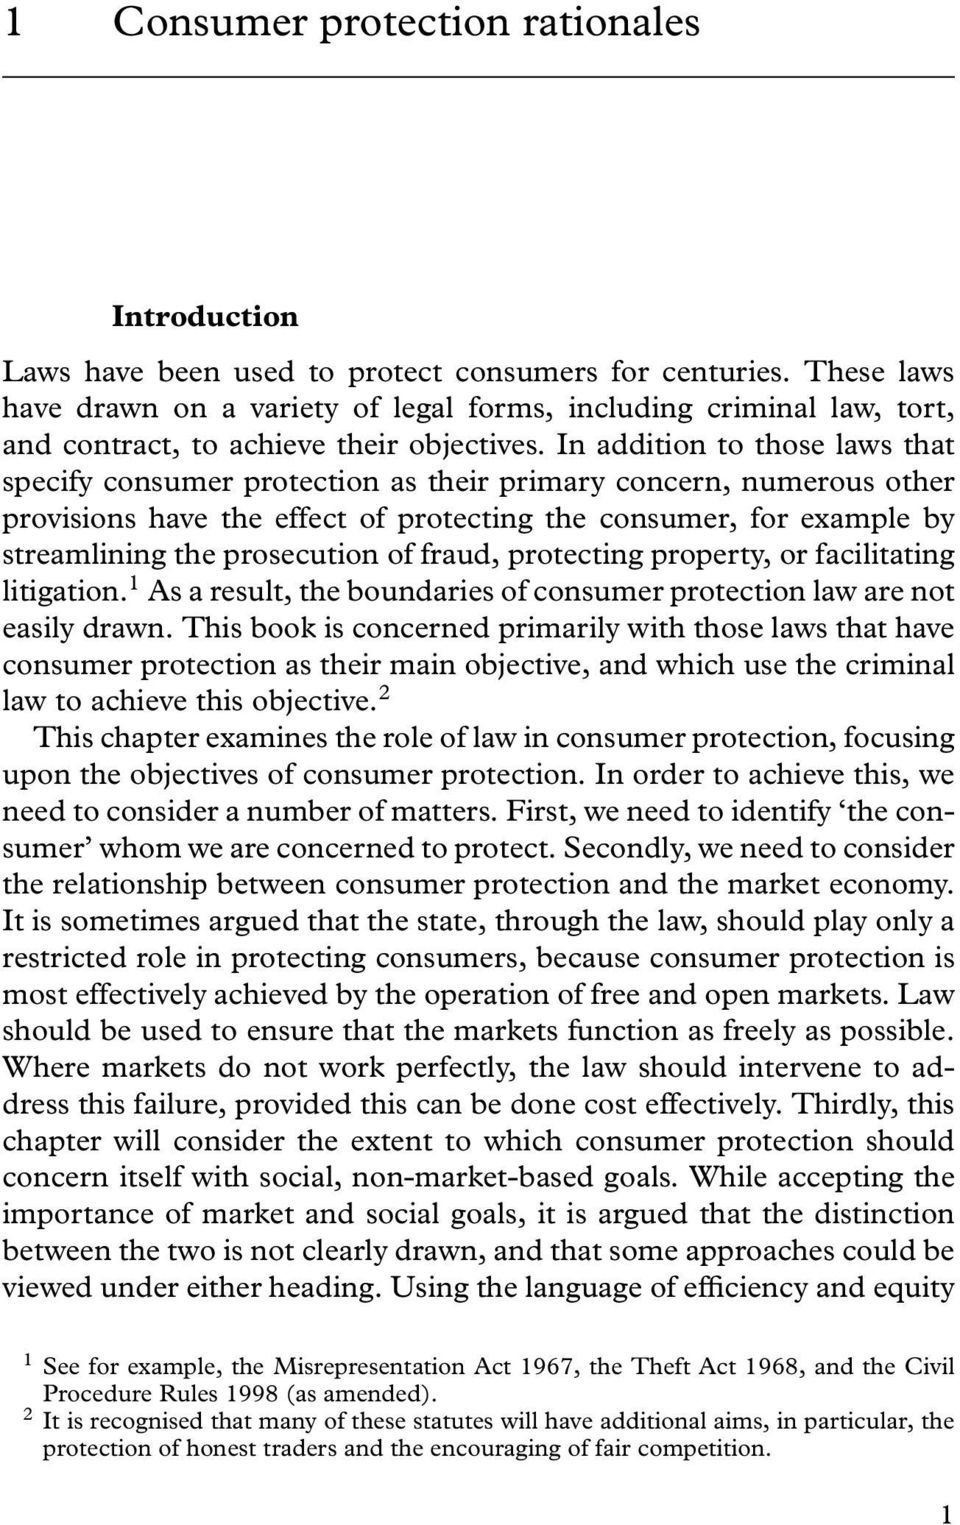 In addition to those laws that specify consumer protection as their primary concern, numerous other provisions have the effect of protecting the consumer, for example by streamlining the prosecution